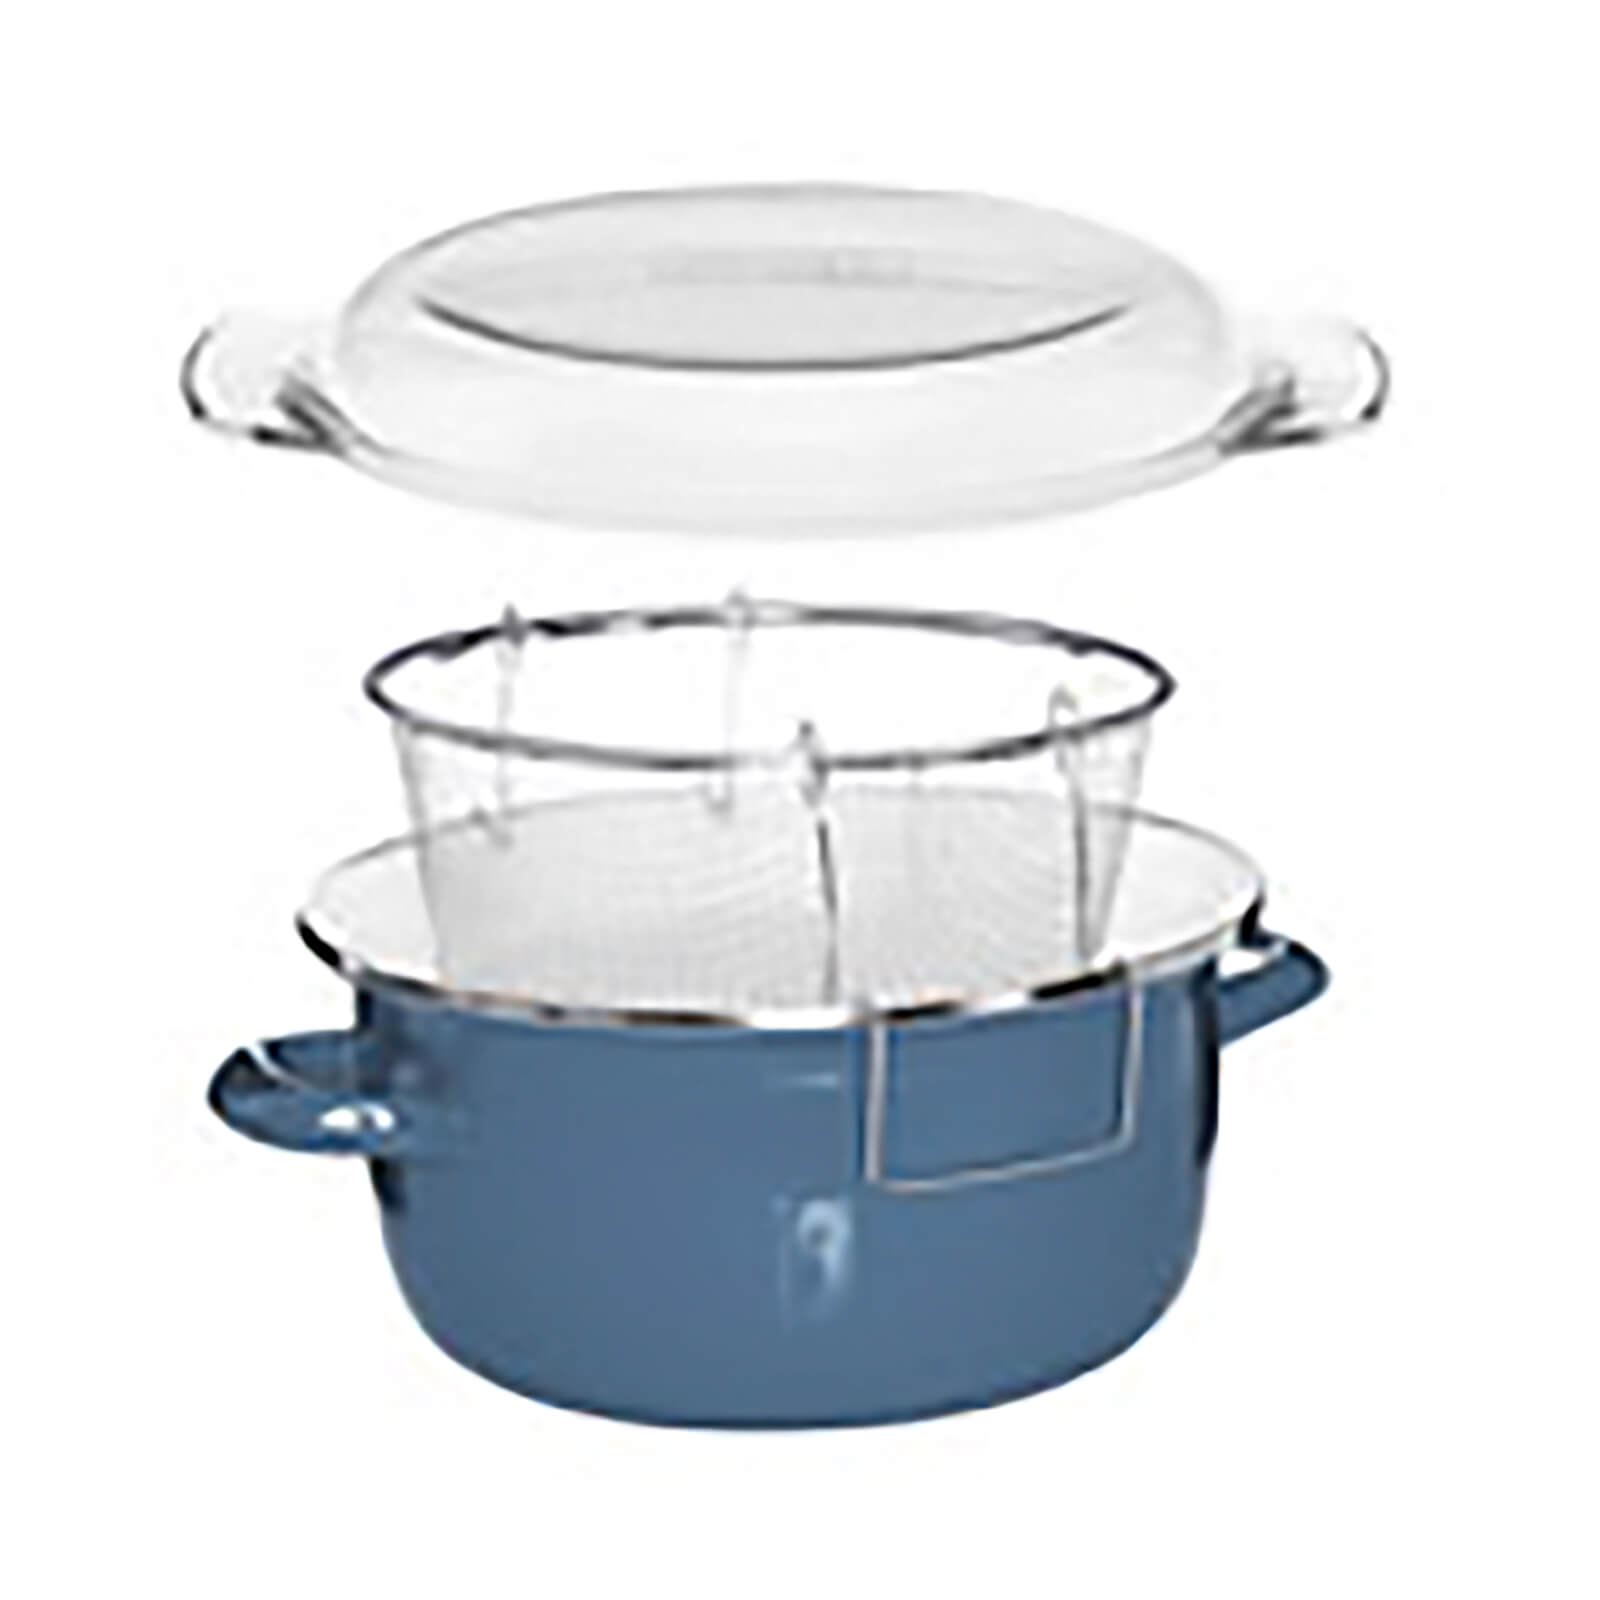 Enamel on Steel Deep Fryer - Blue